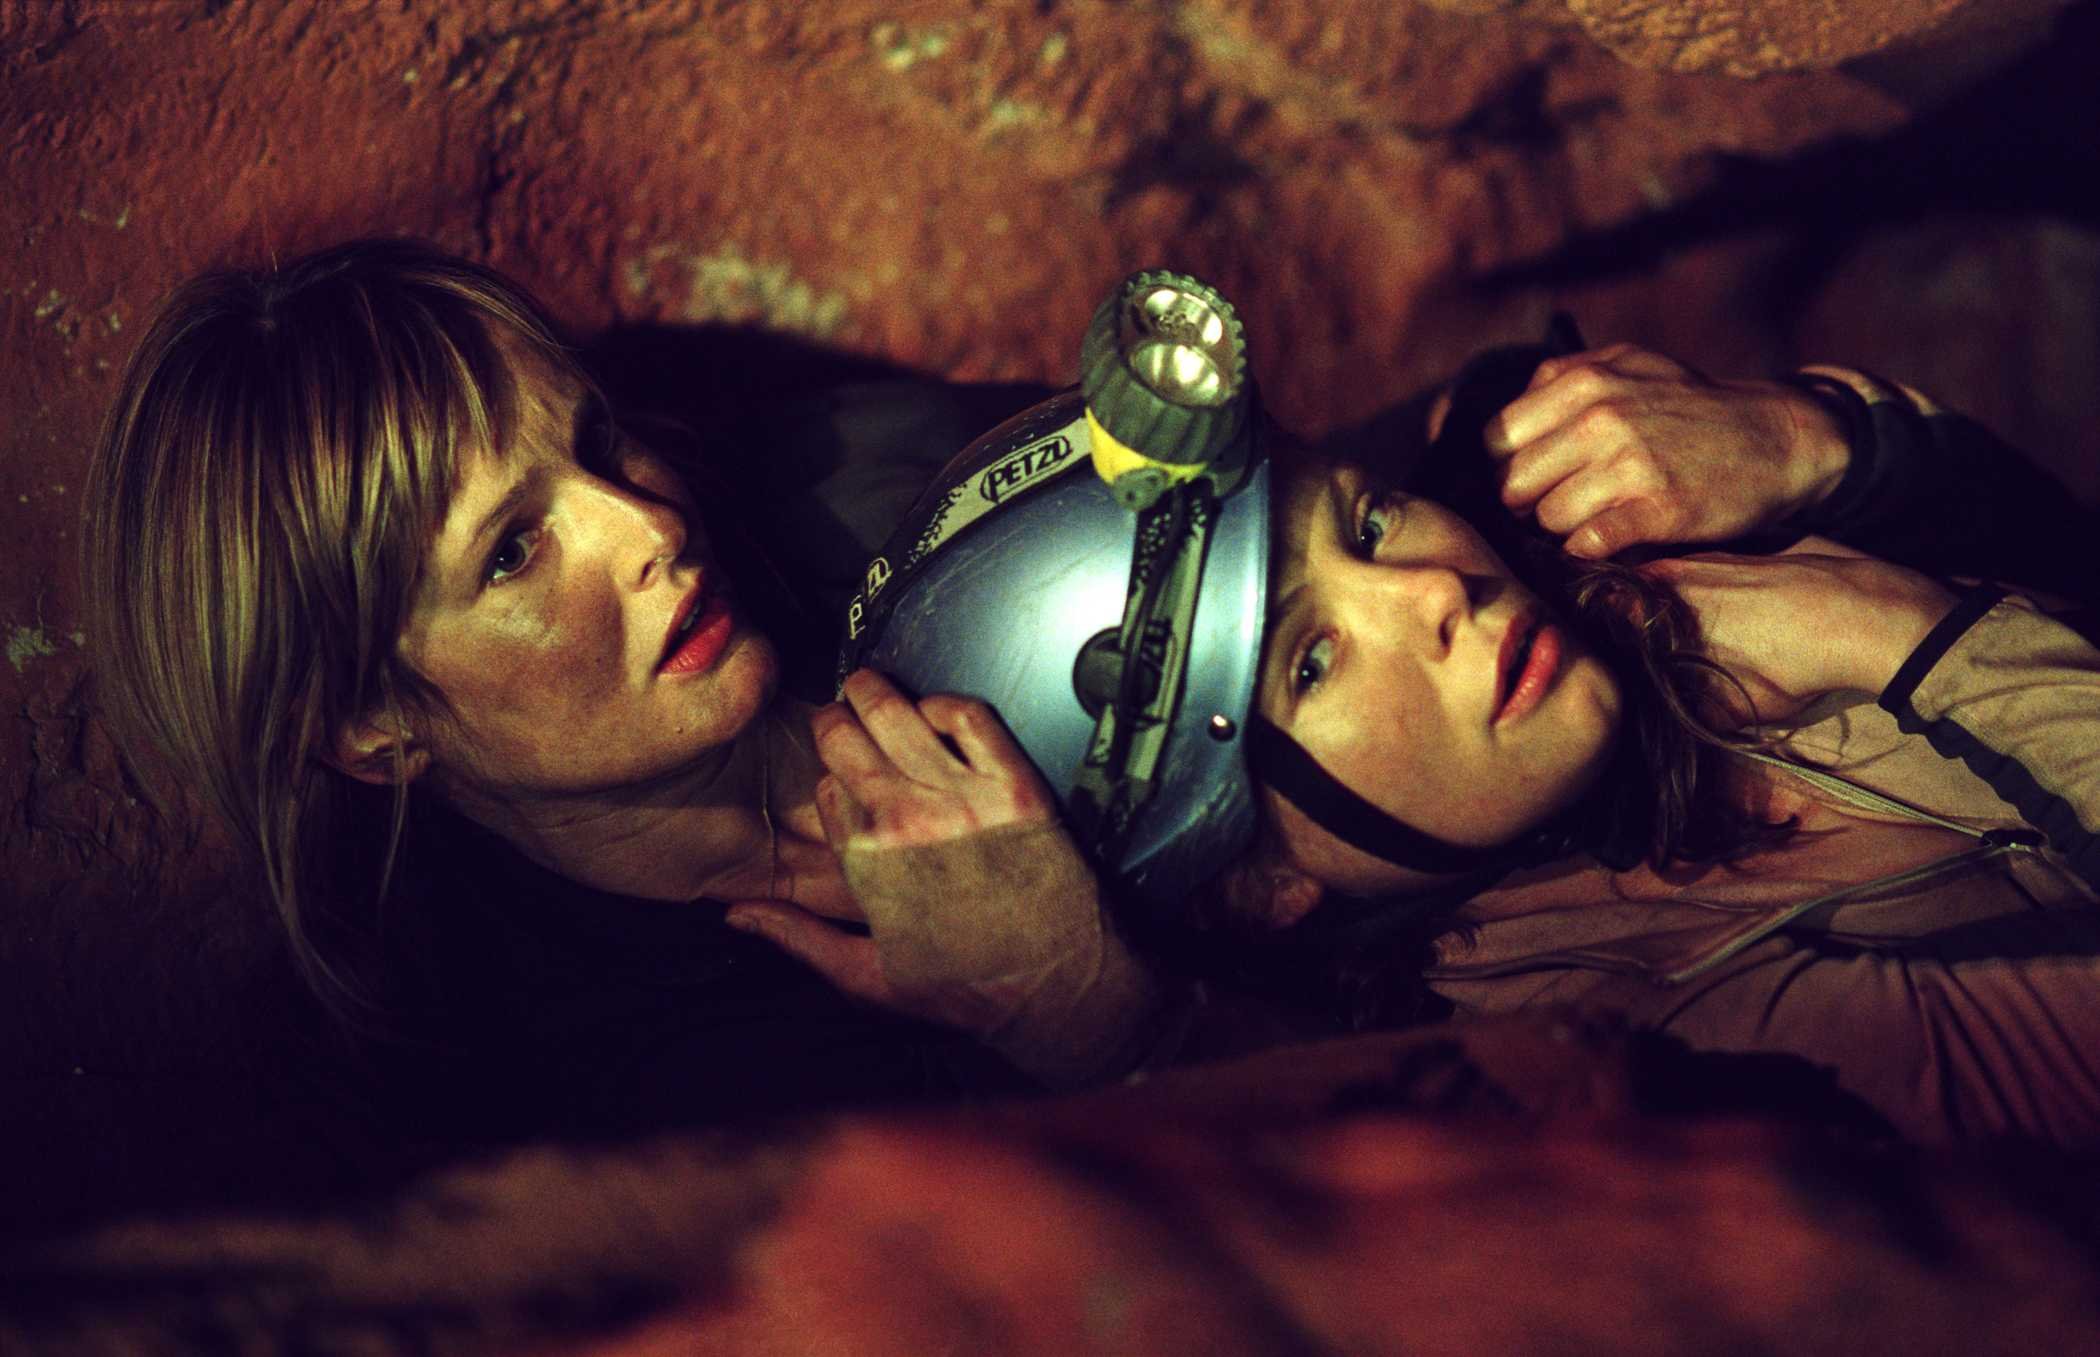 cenneme bir adım (The Descent.Part.1)|.[2005].|dvdrip.altyazı içindedir| The-descent-1